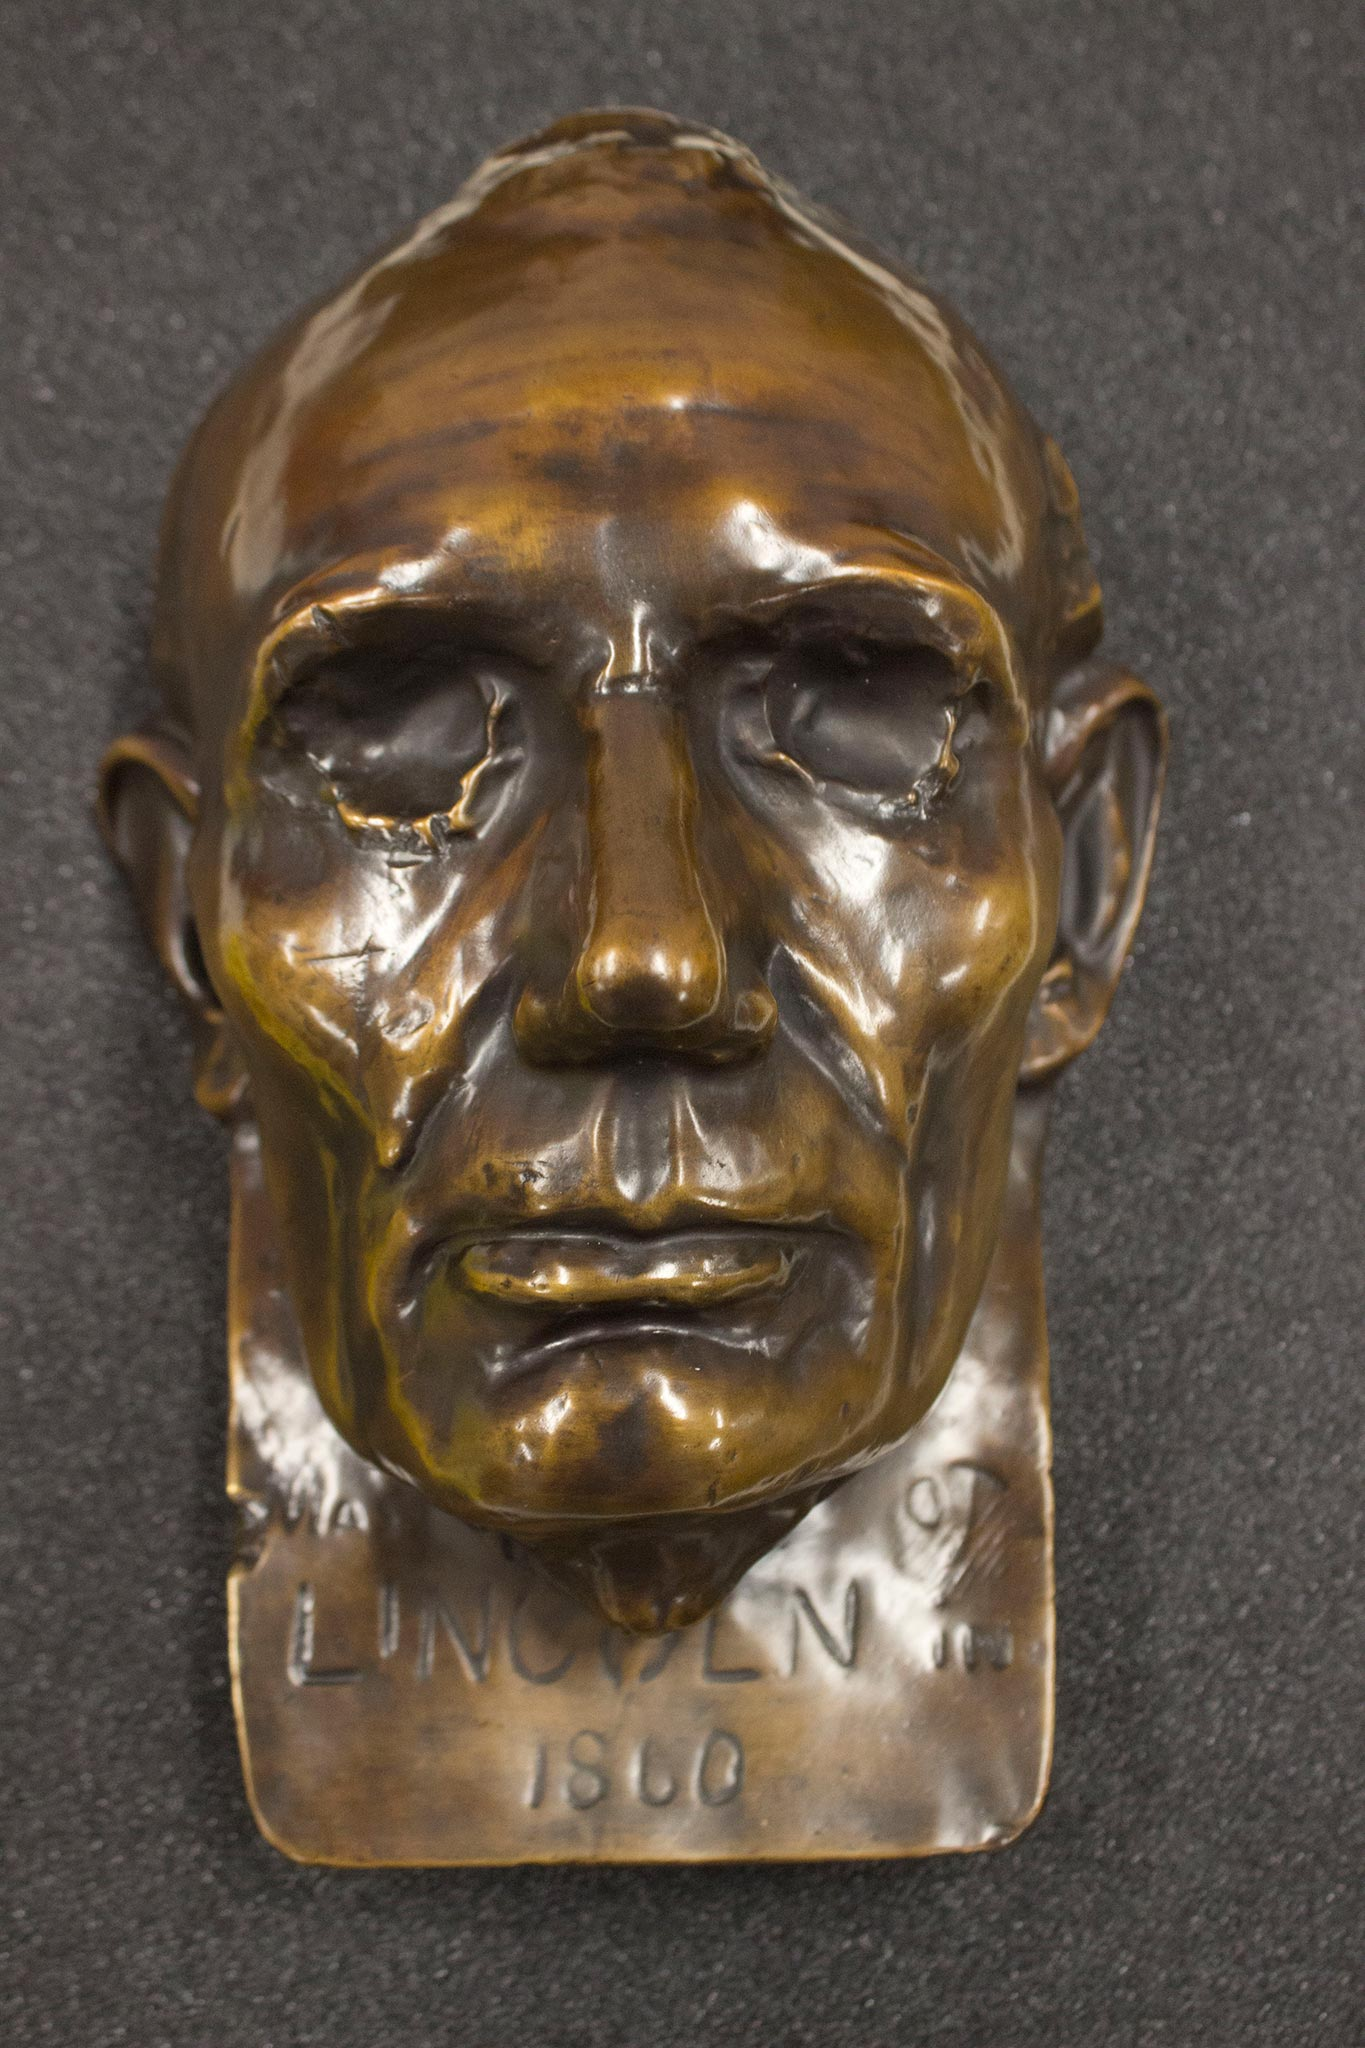 This is a bronze replica of the beardless life mask of Abraham Lincoln created by sculptor Leonard Volk in 1860. He created casts of Lincoln's hand as well. Volk used the face mask to create full busts of Lincoln, and other sculptors and artists have used this mask for their own work.